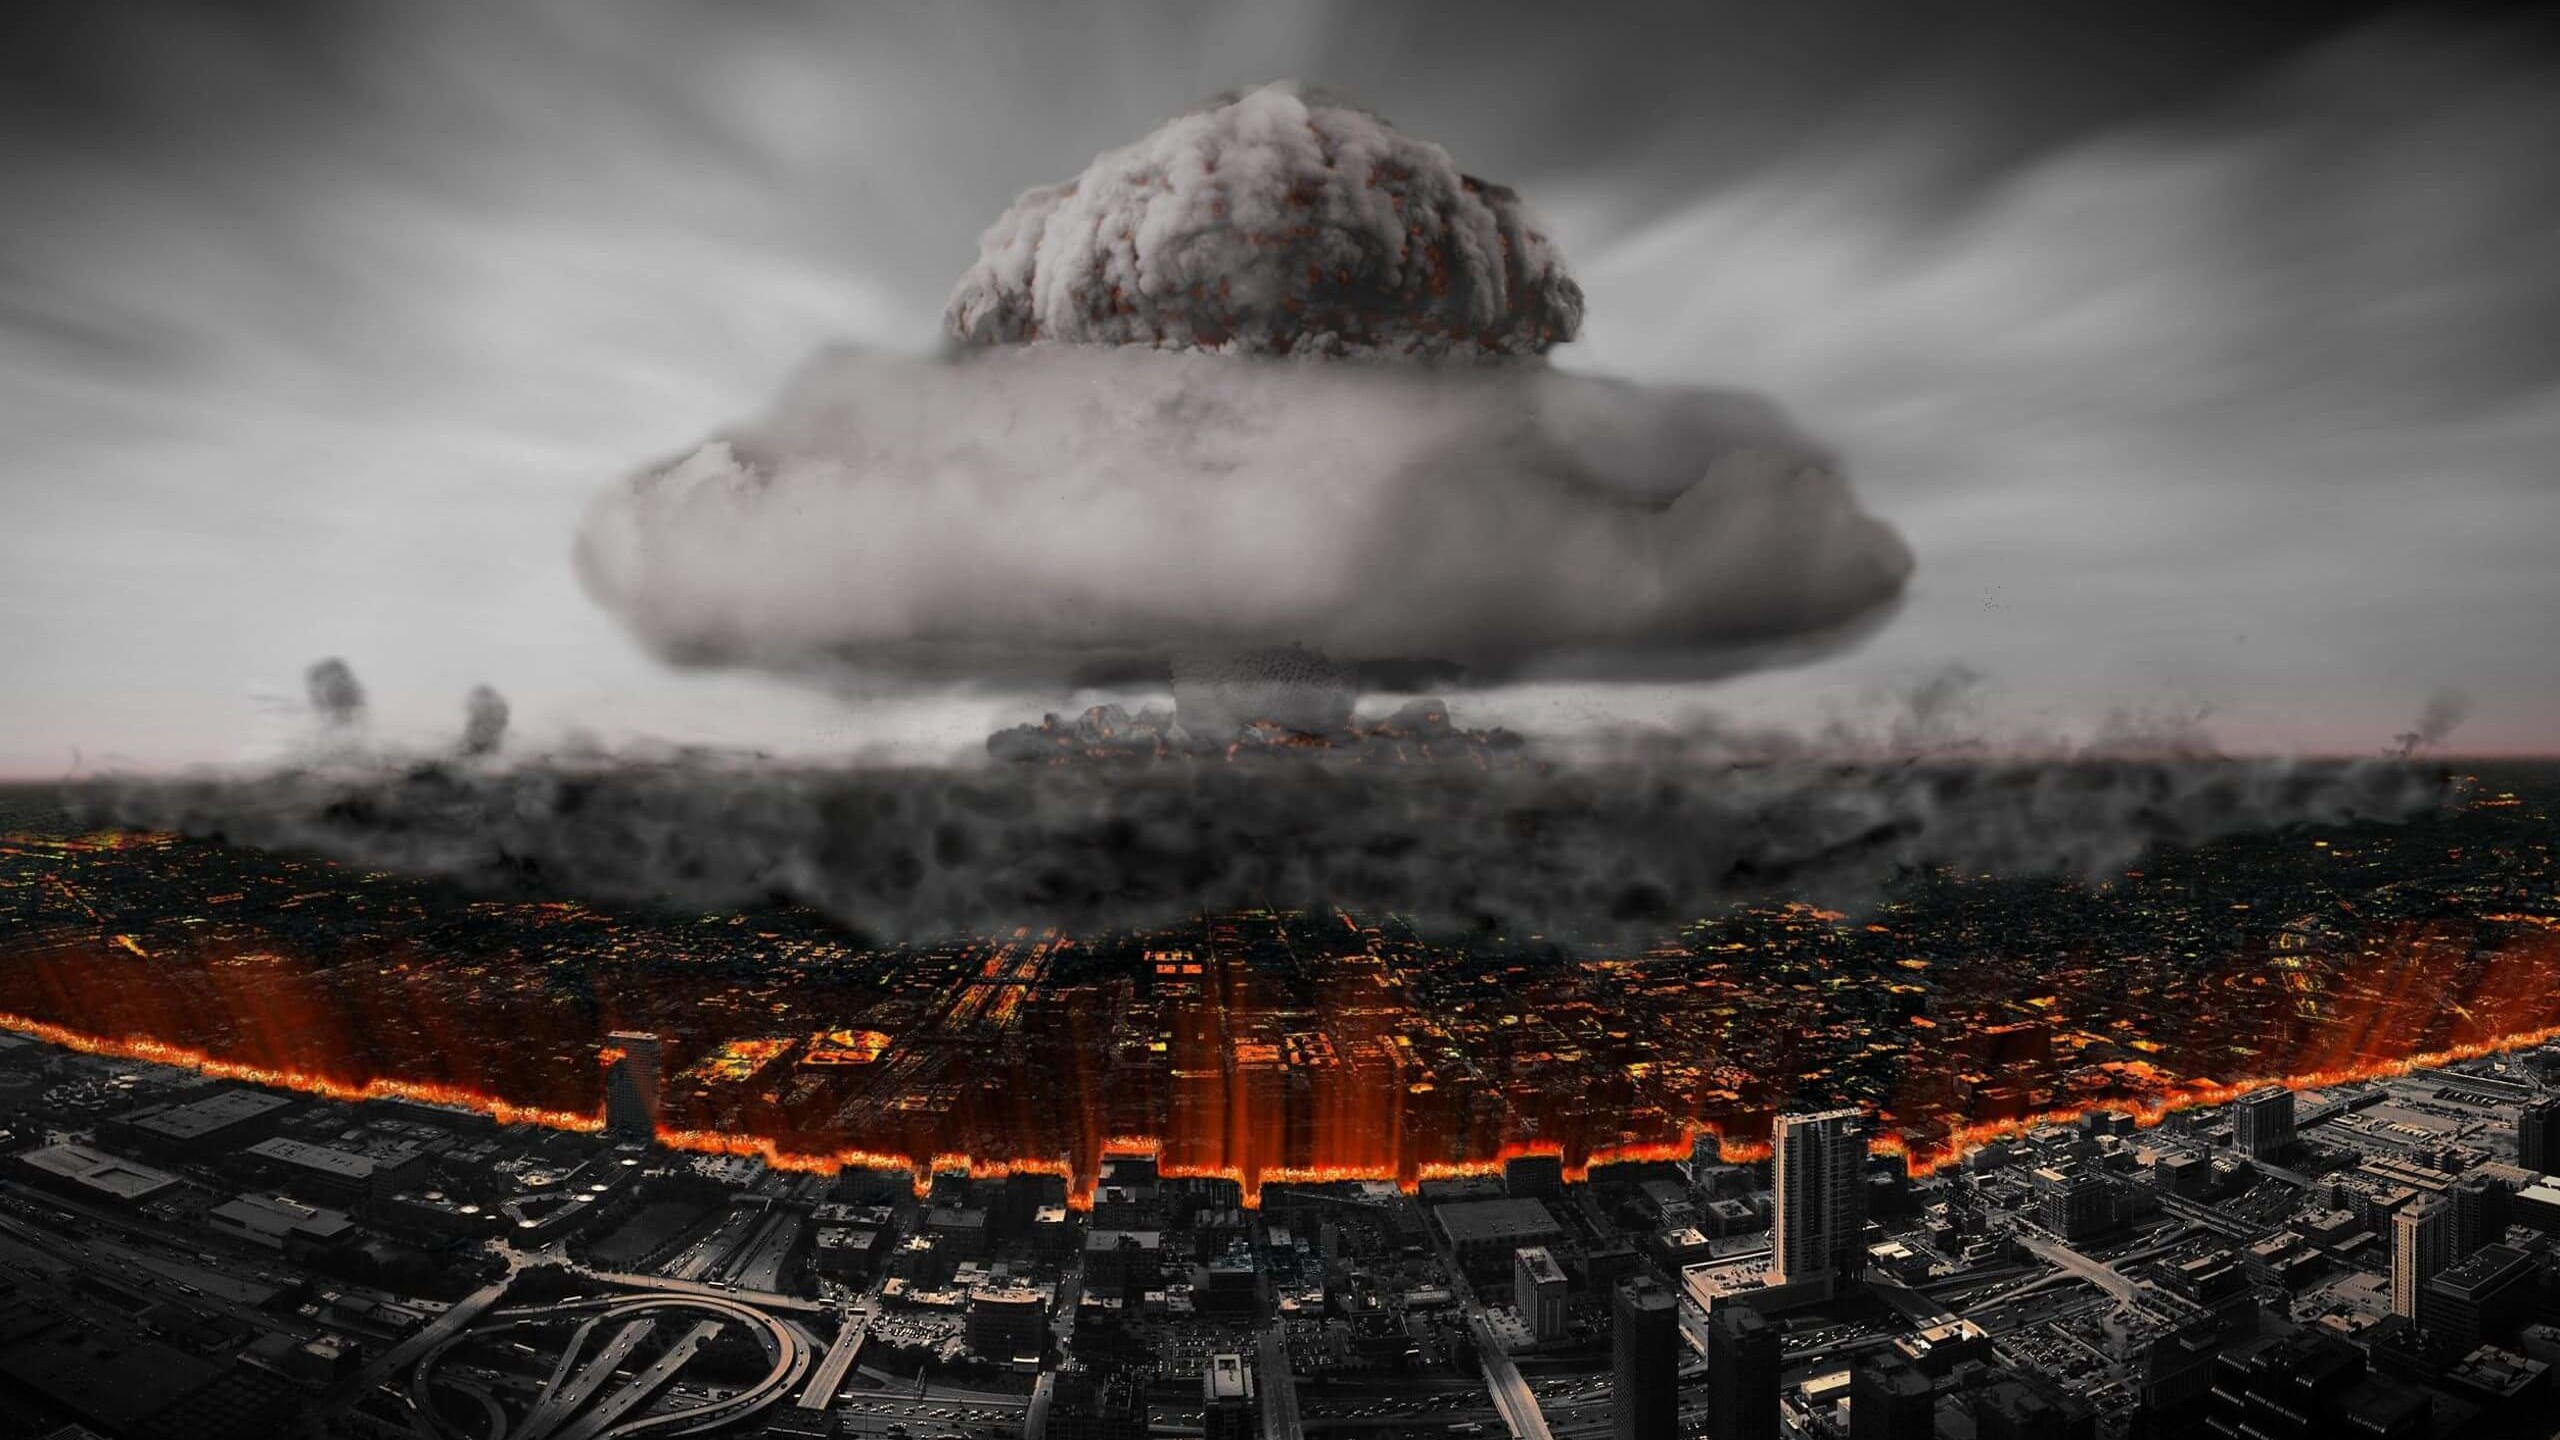 Nuclear Mushroom Cloud Wallpaper for Social Media YouTube Channel Art